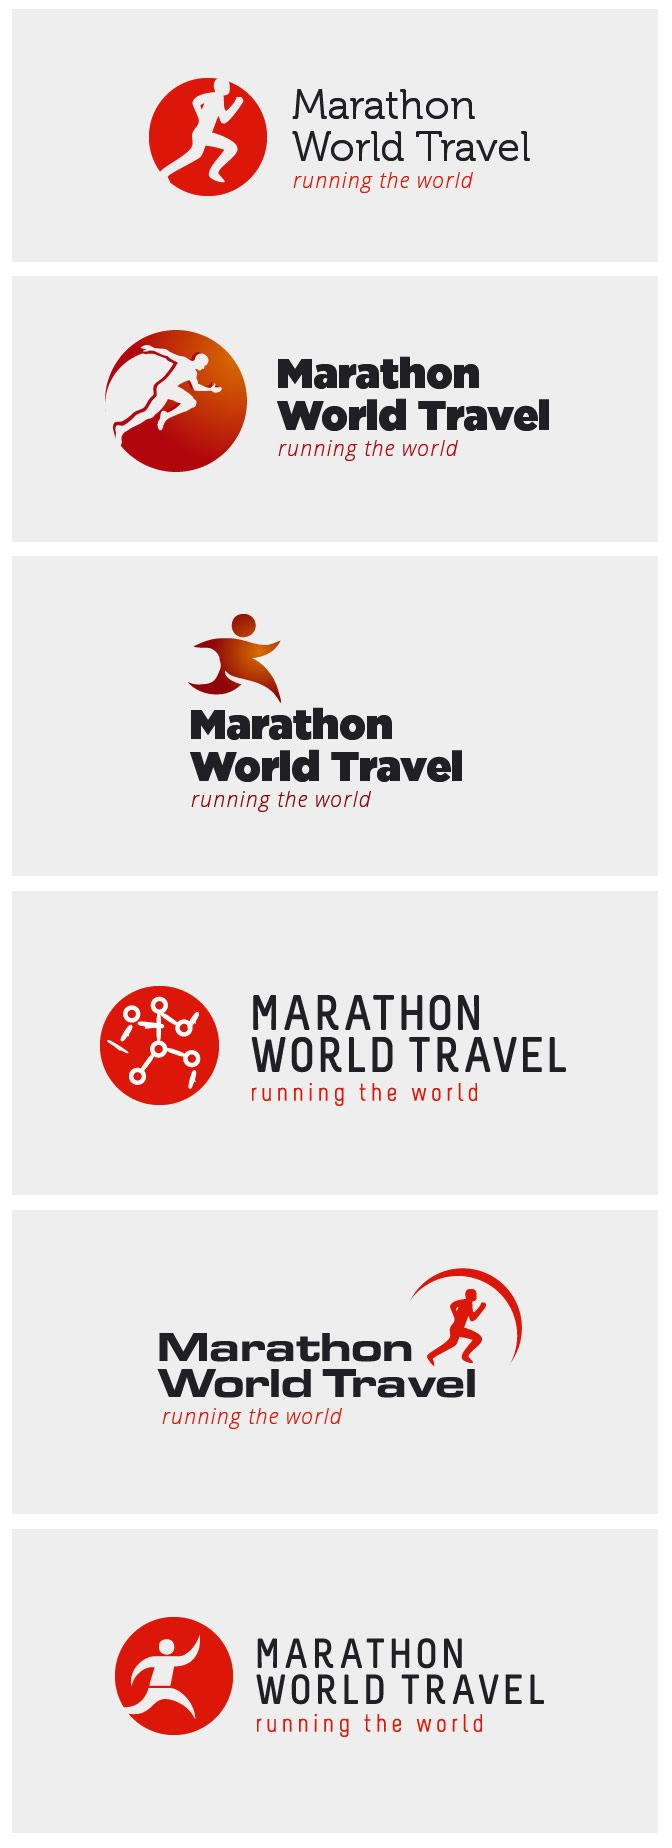 Marathon World Travel